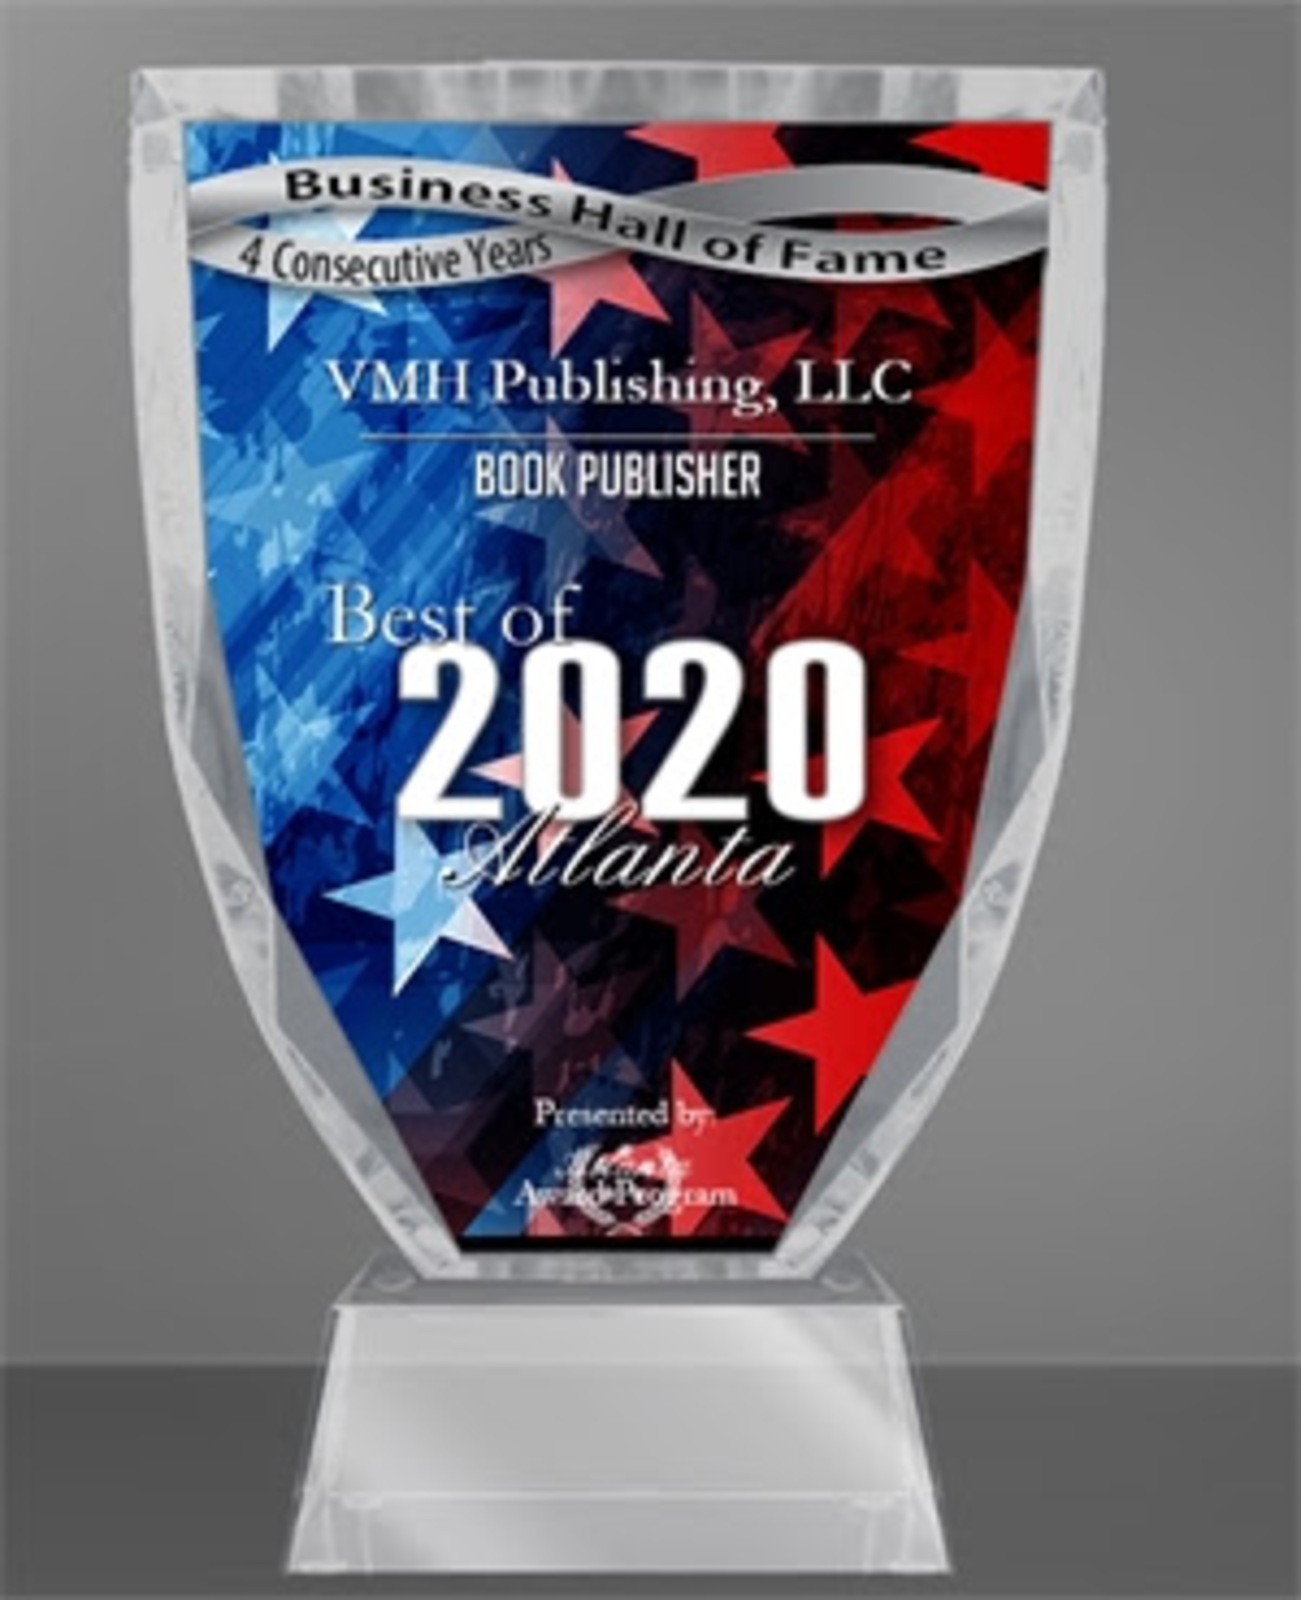 VMH Publishing, LLC Receives 2020 Best of Atlanta Award Four Years & Business Hall of Fame